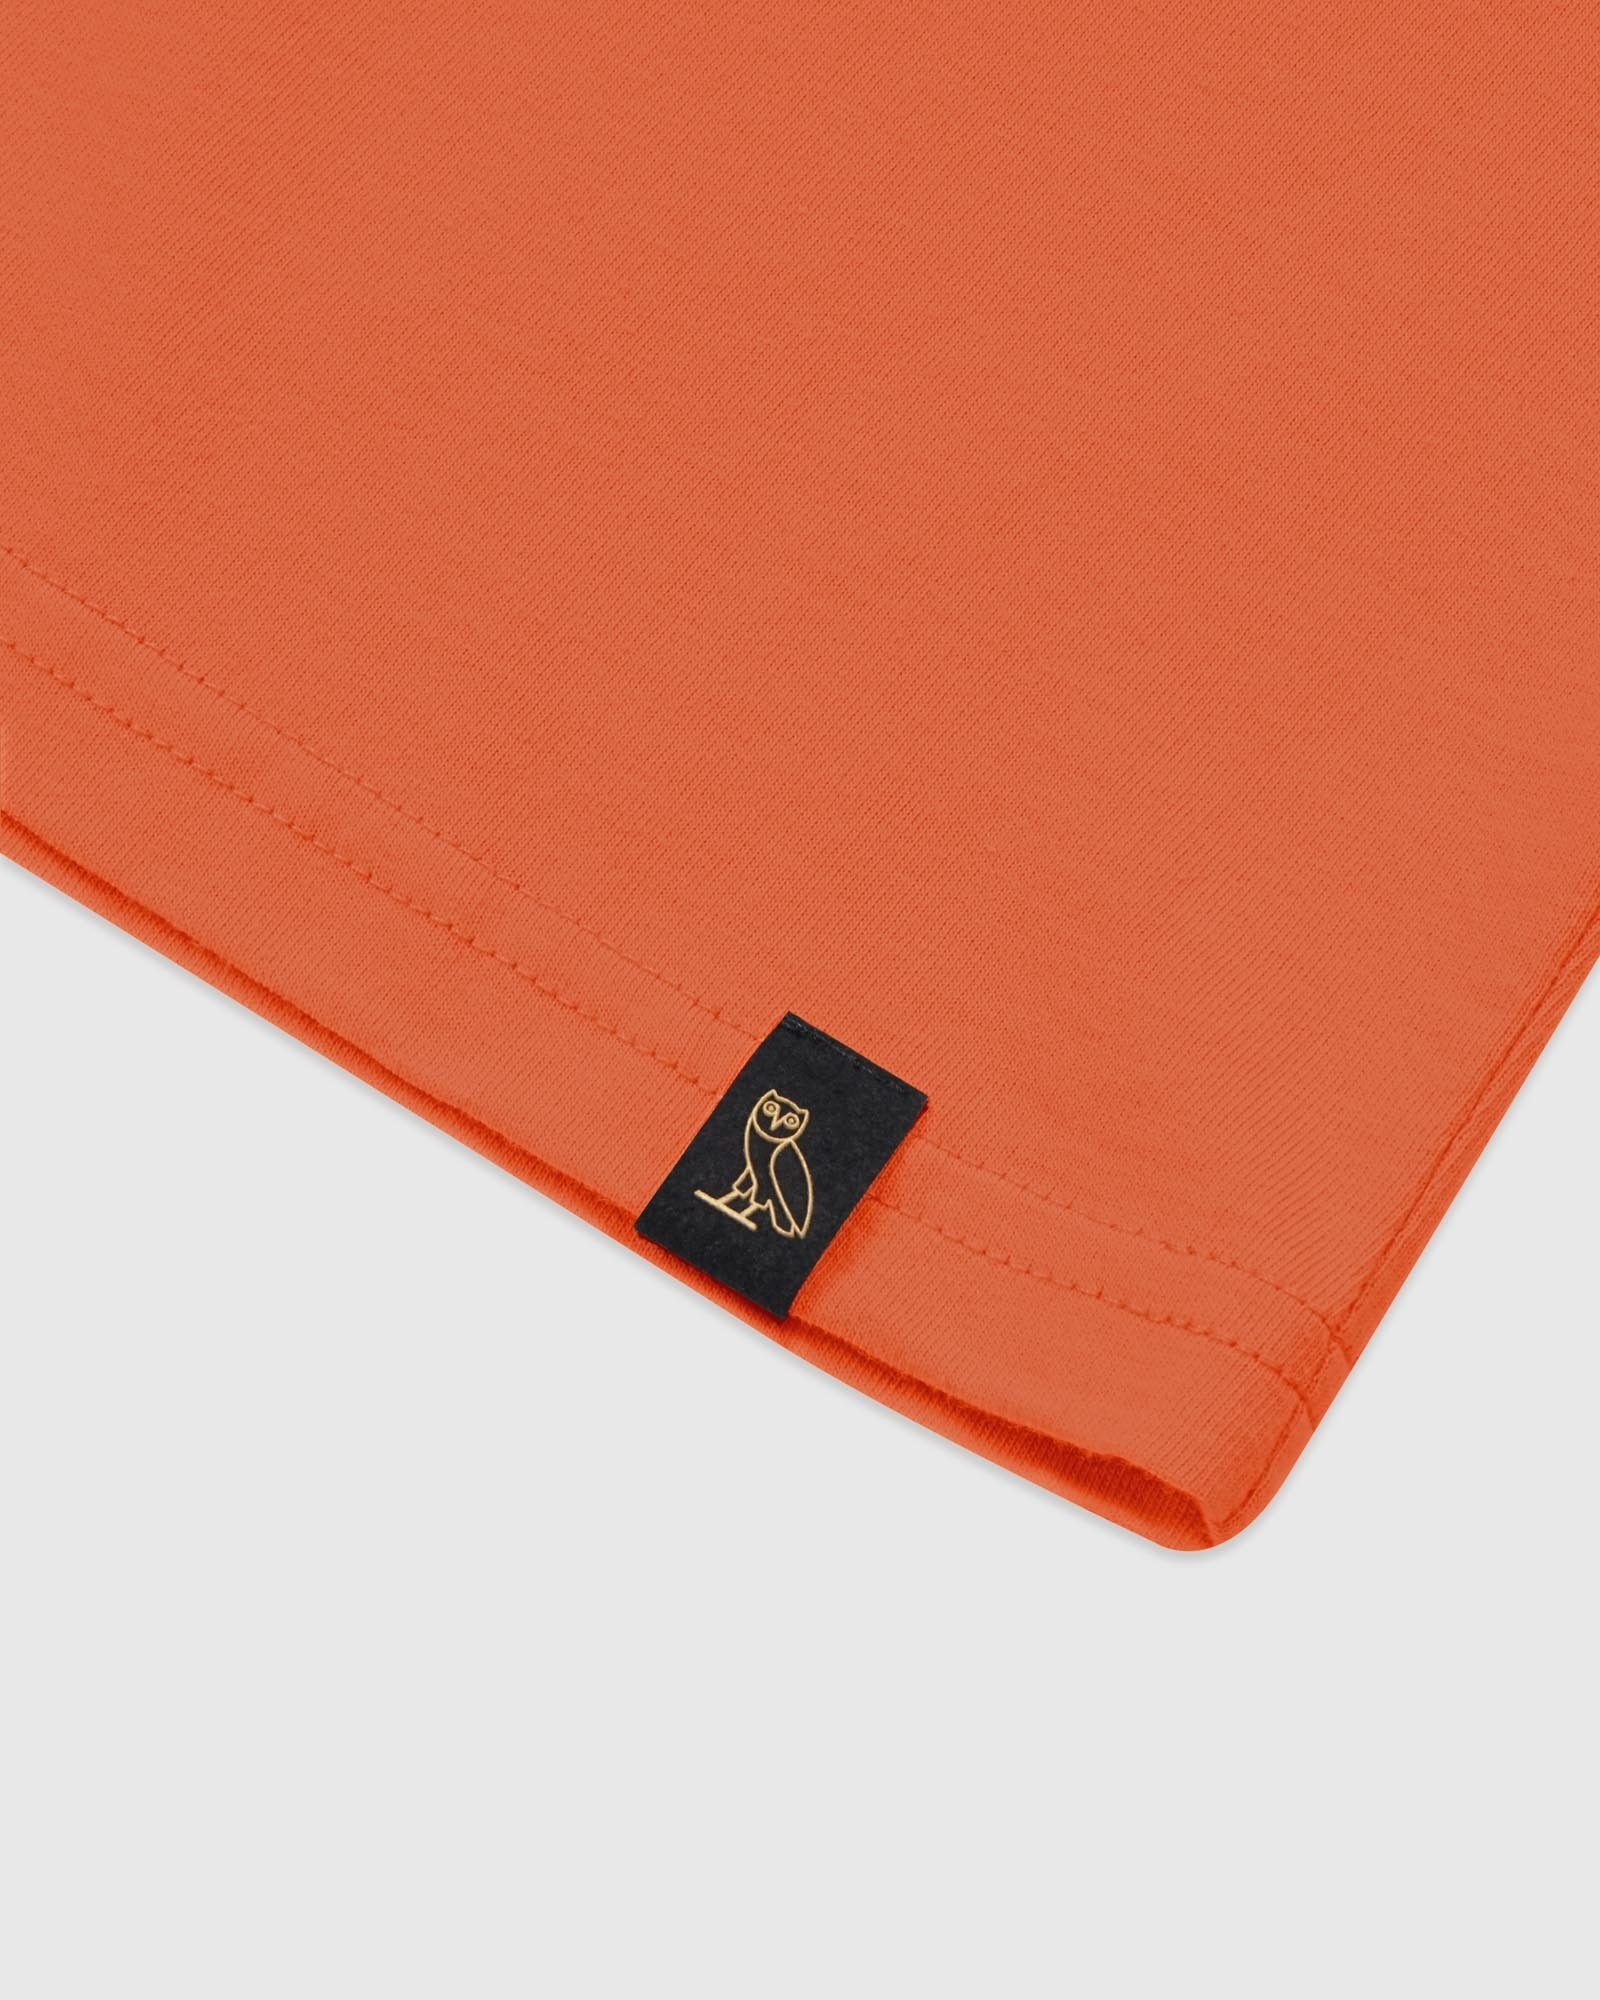 COLLEGIATE ARCH LONGSLEEVE T-SHIRT - ORANGE IMAGE #4